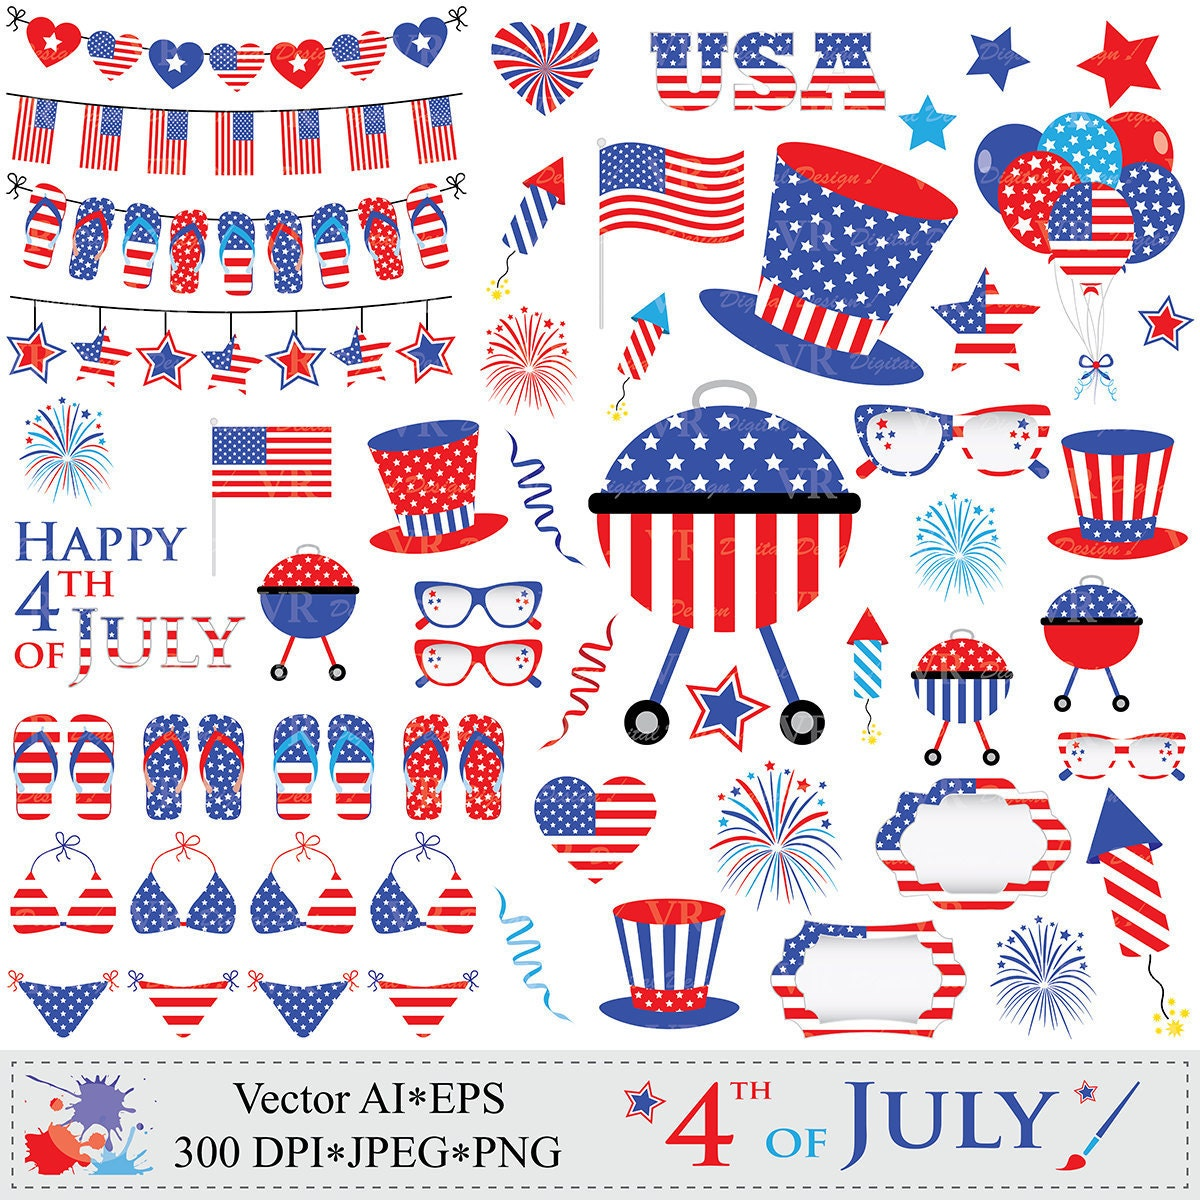 4th of July Clipart Patriotic Clip Art USA by VRDigitalDesign